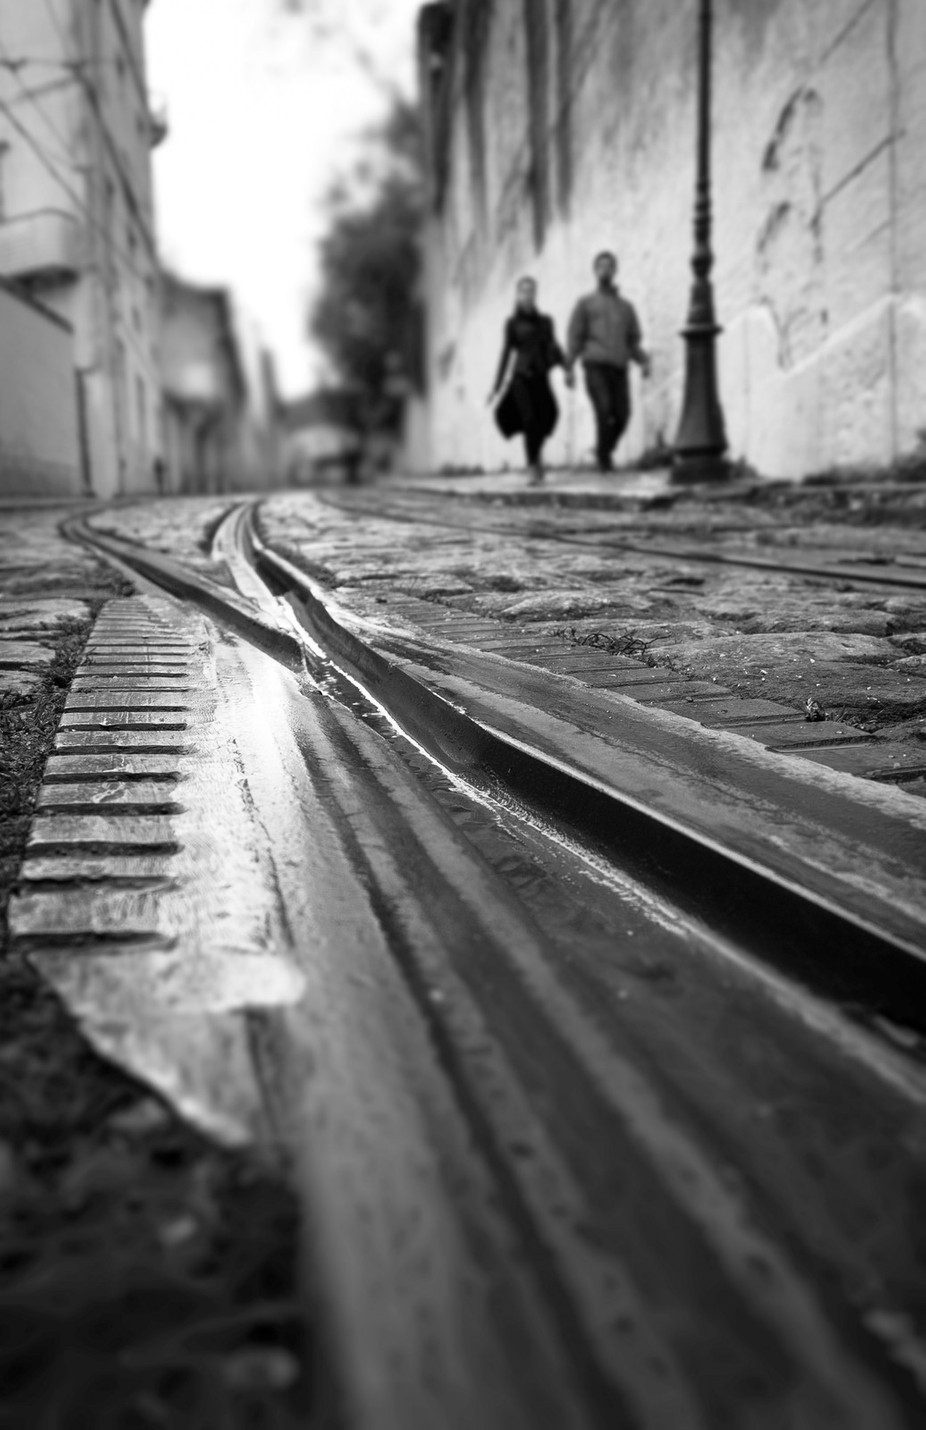 Cross Lines by clementinacabral - City Life In Black And White Photo Contest